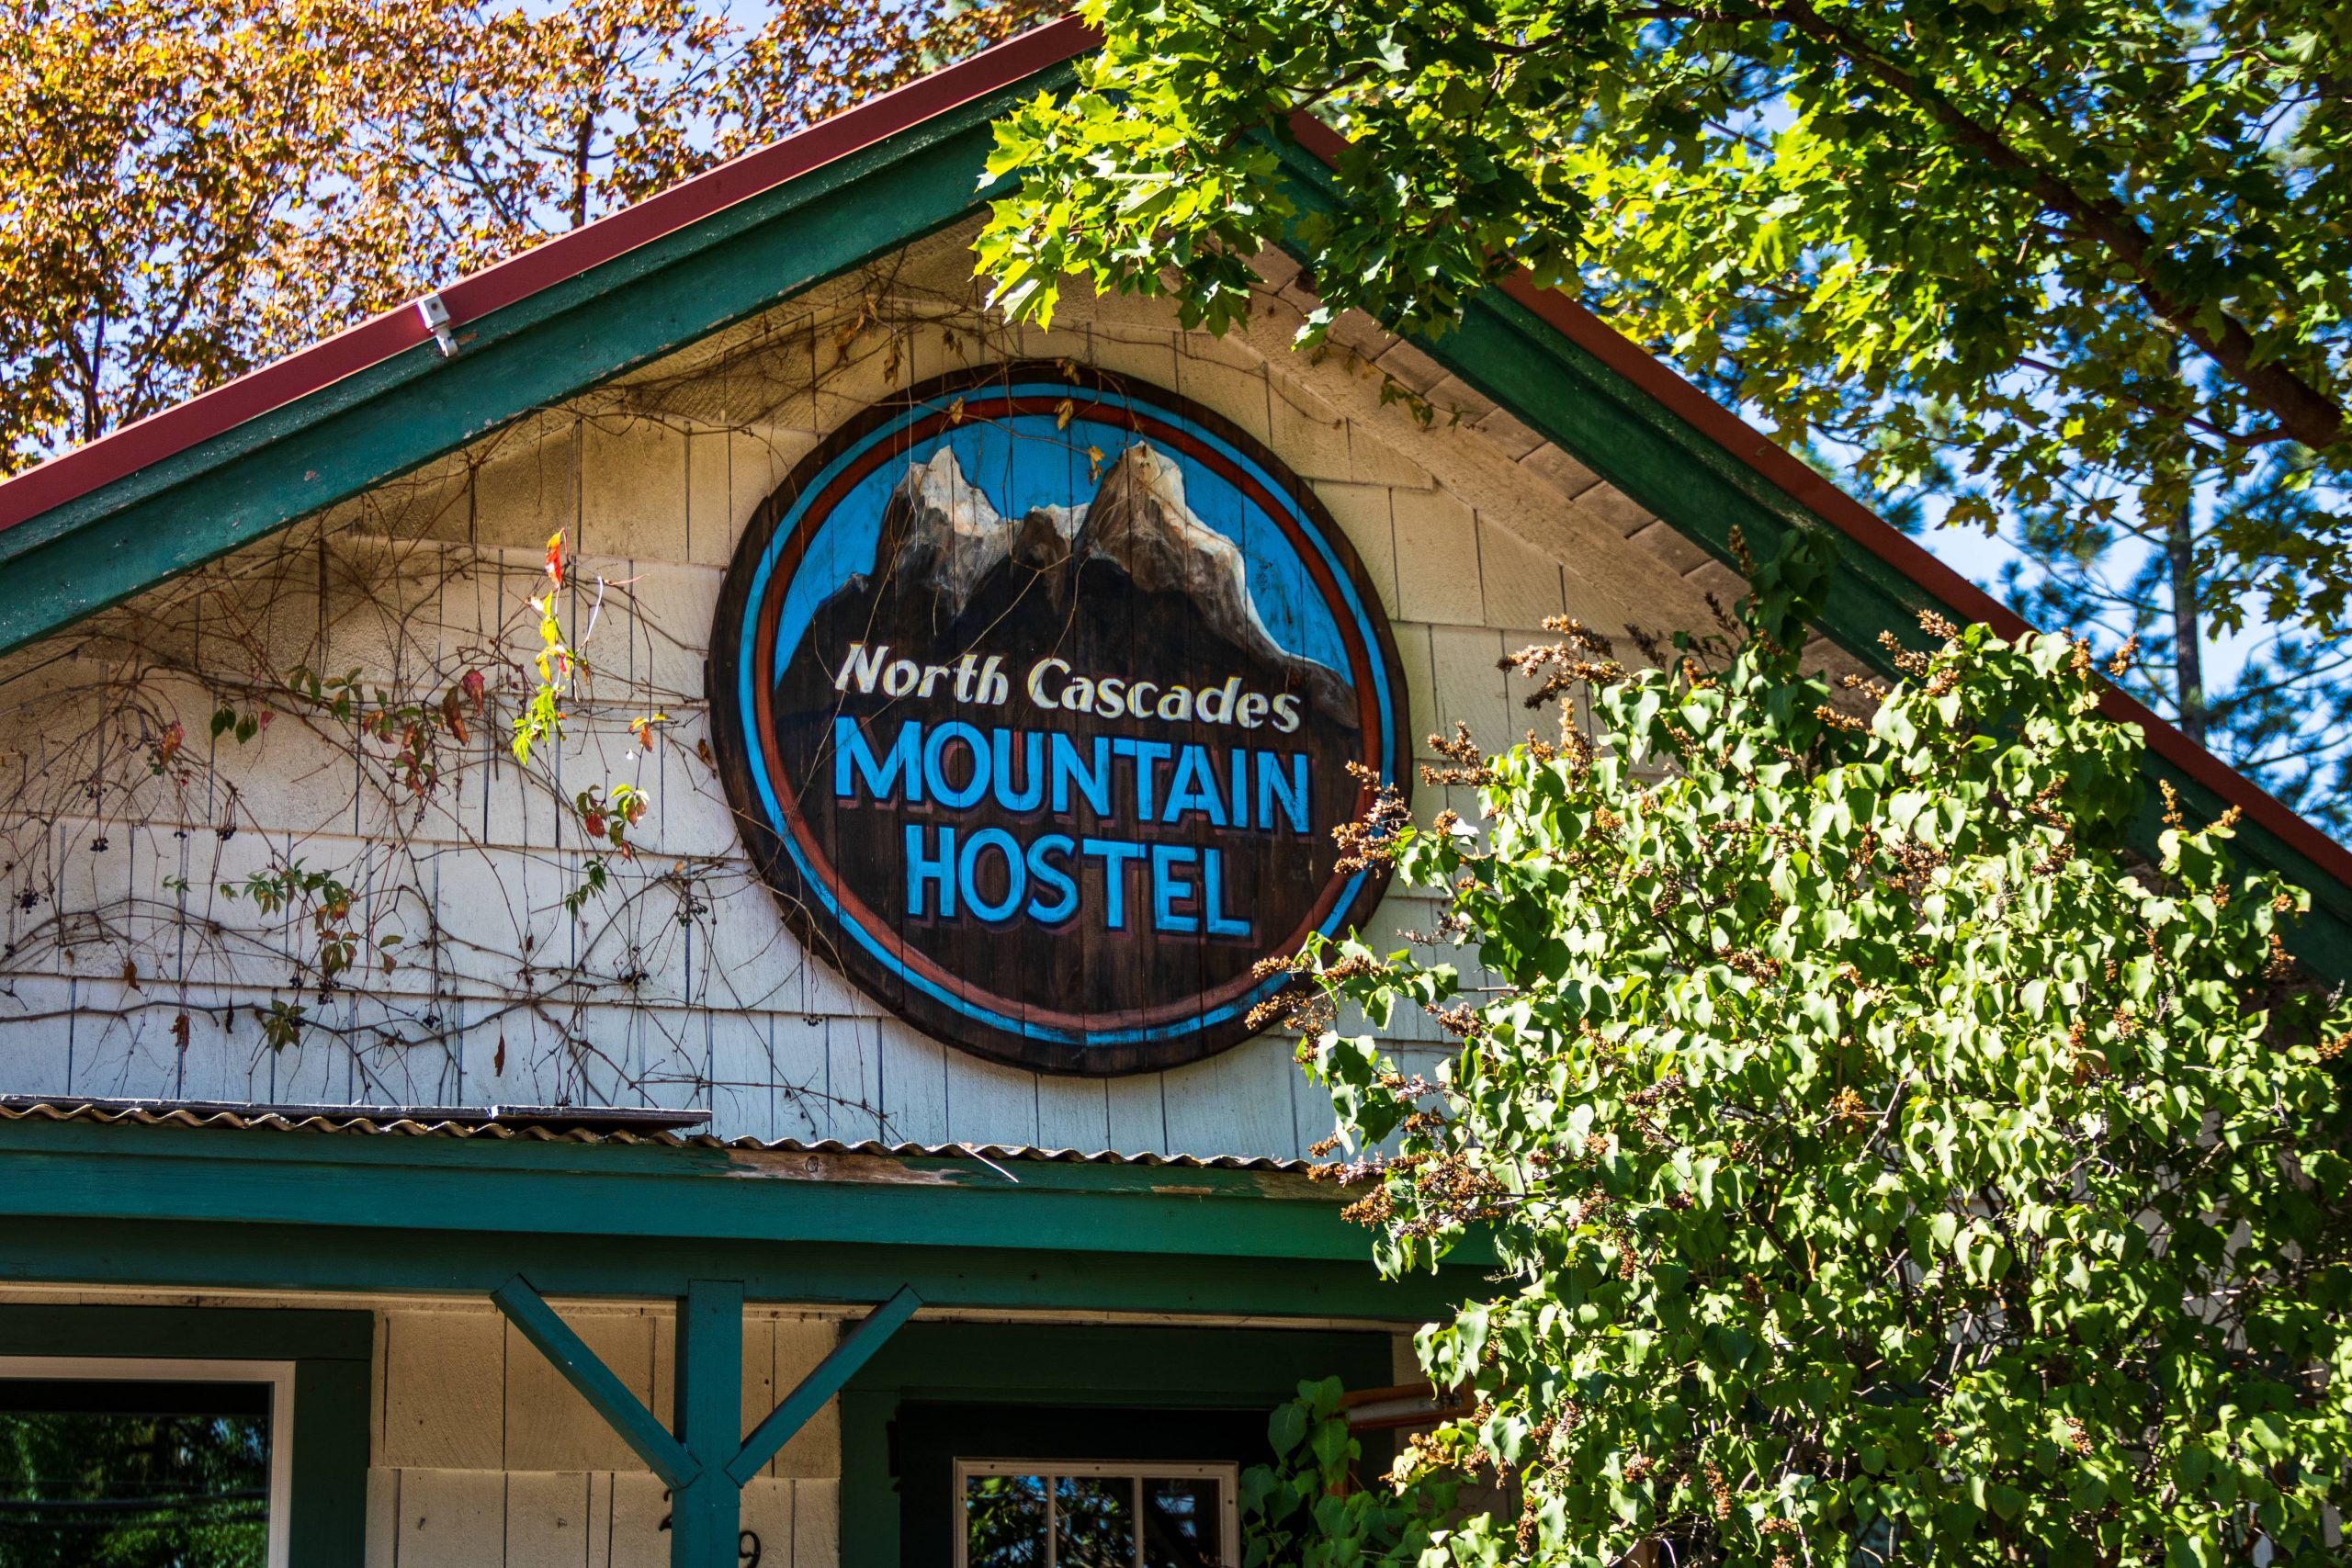 The North Cascades Mountain Hostel sign on the front of the house